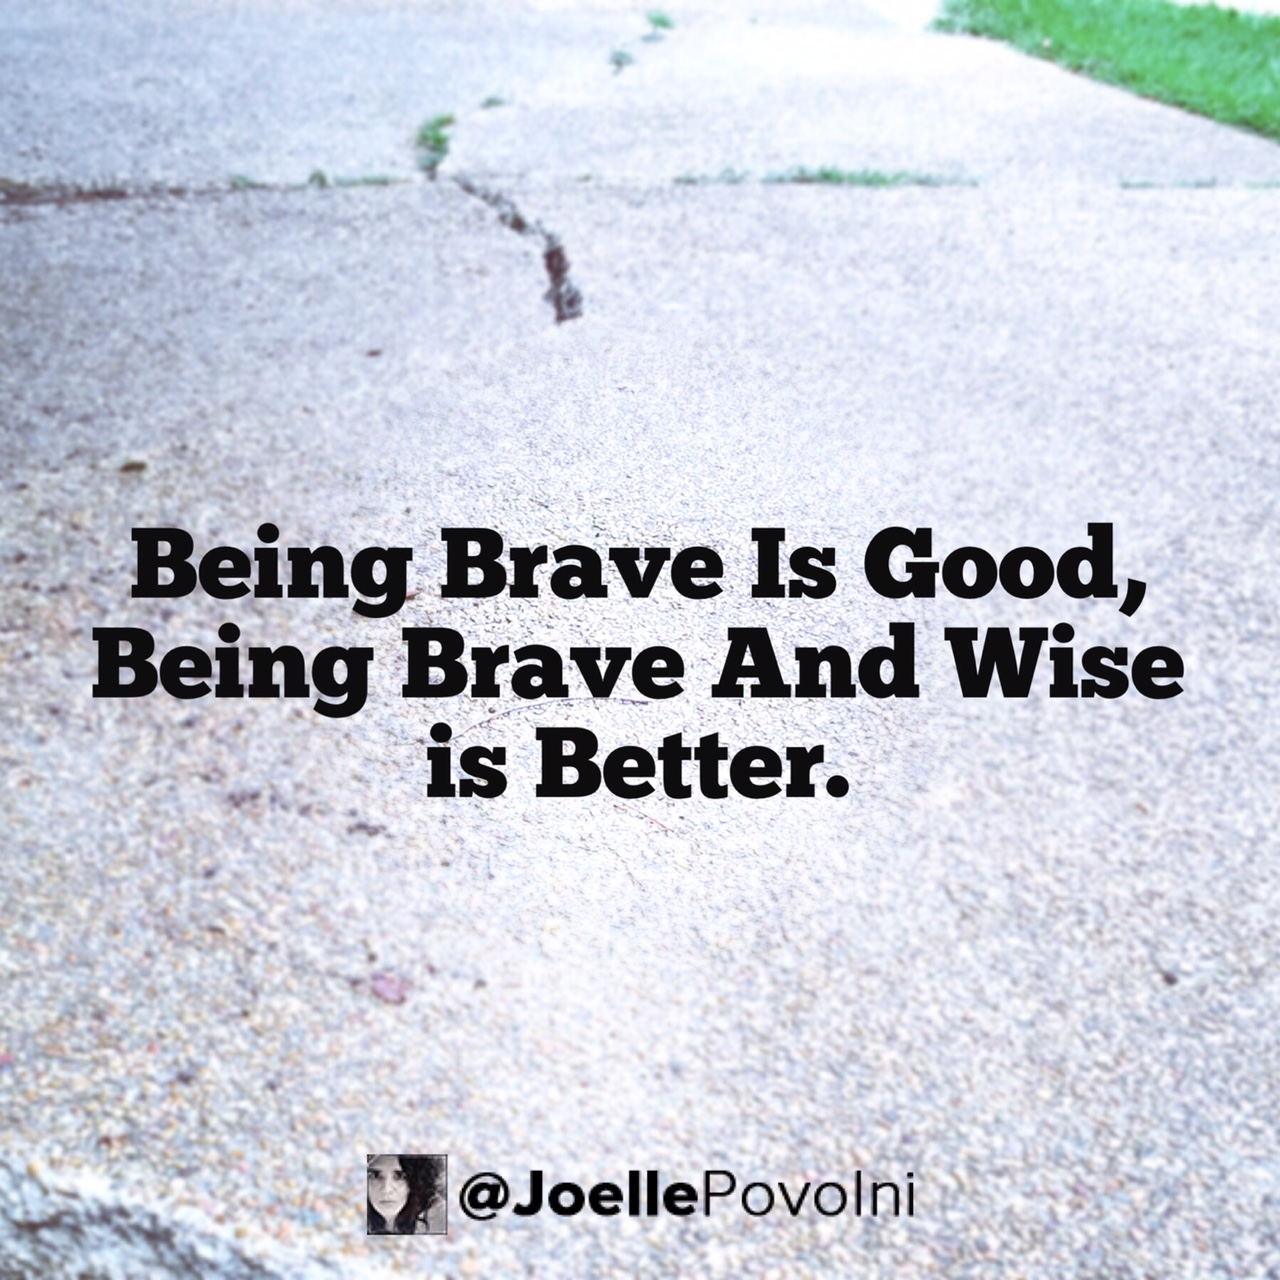 Be Brave and Wise